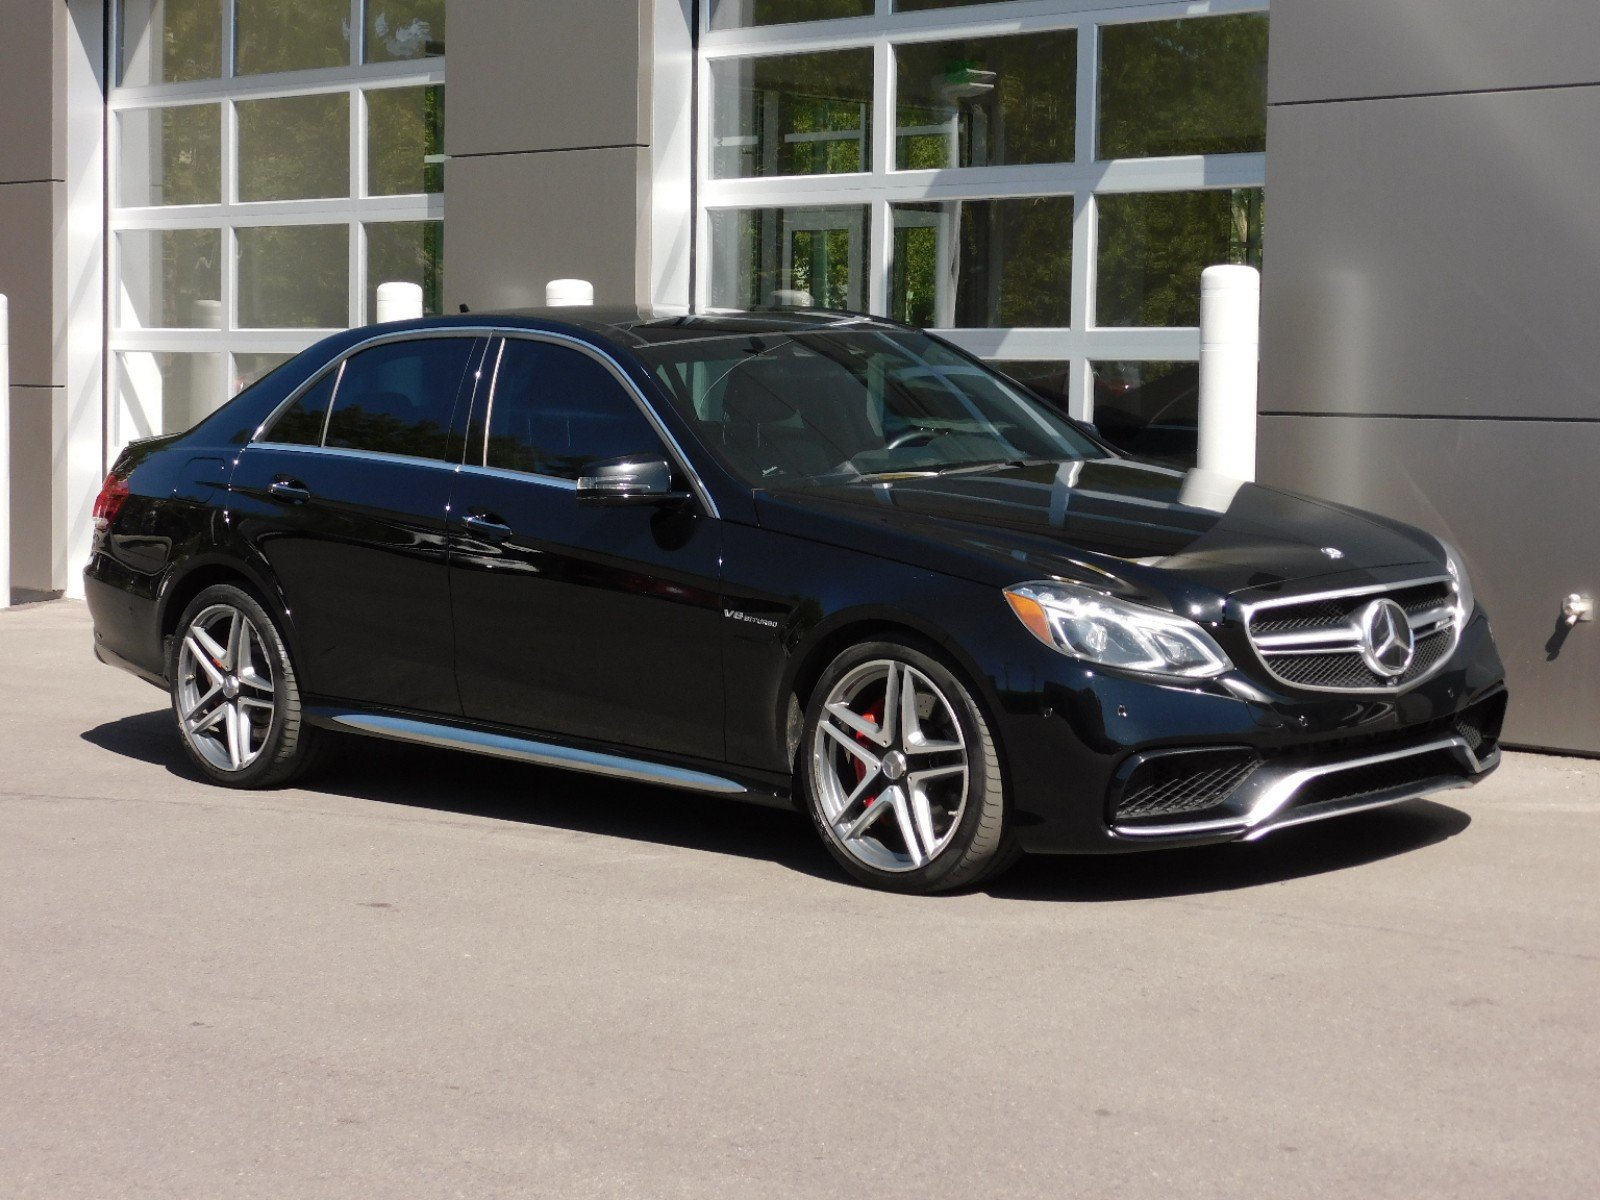 2016 Mercedes Benz Amg E 63 Sedan >> Pre Owned 2016 Mercedes Benz E Class Amg E 63 S Awd 4matic